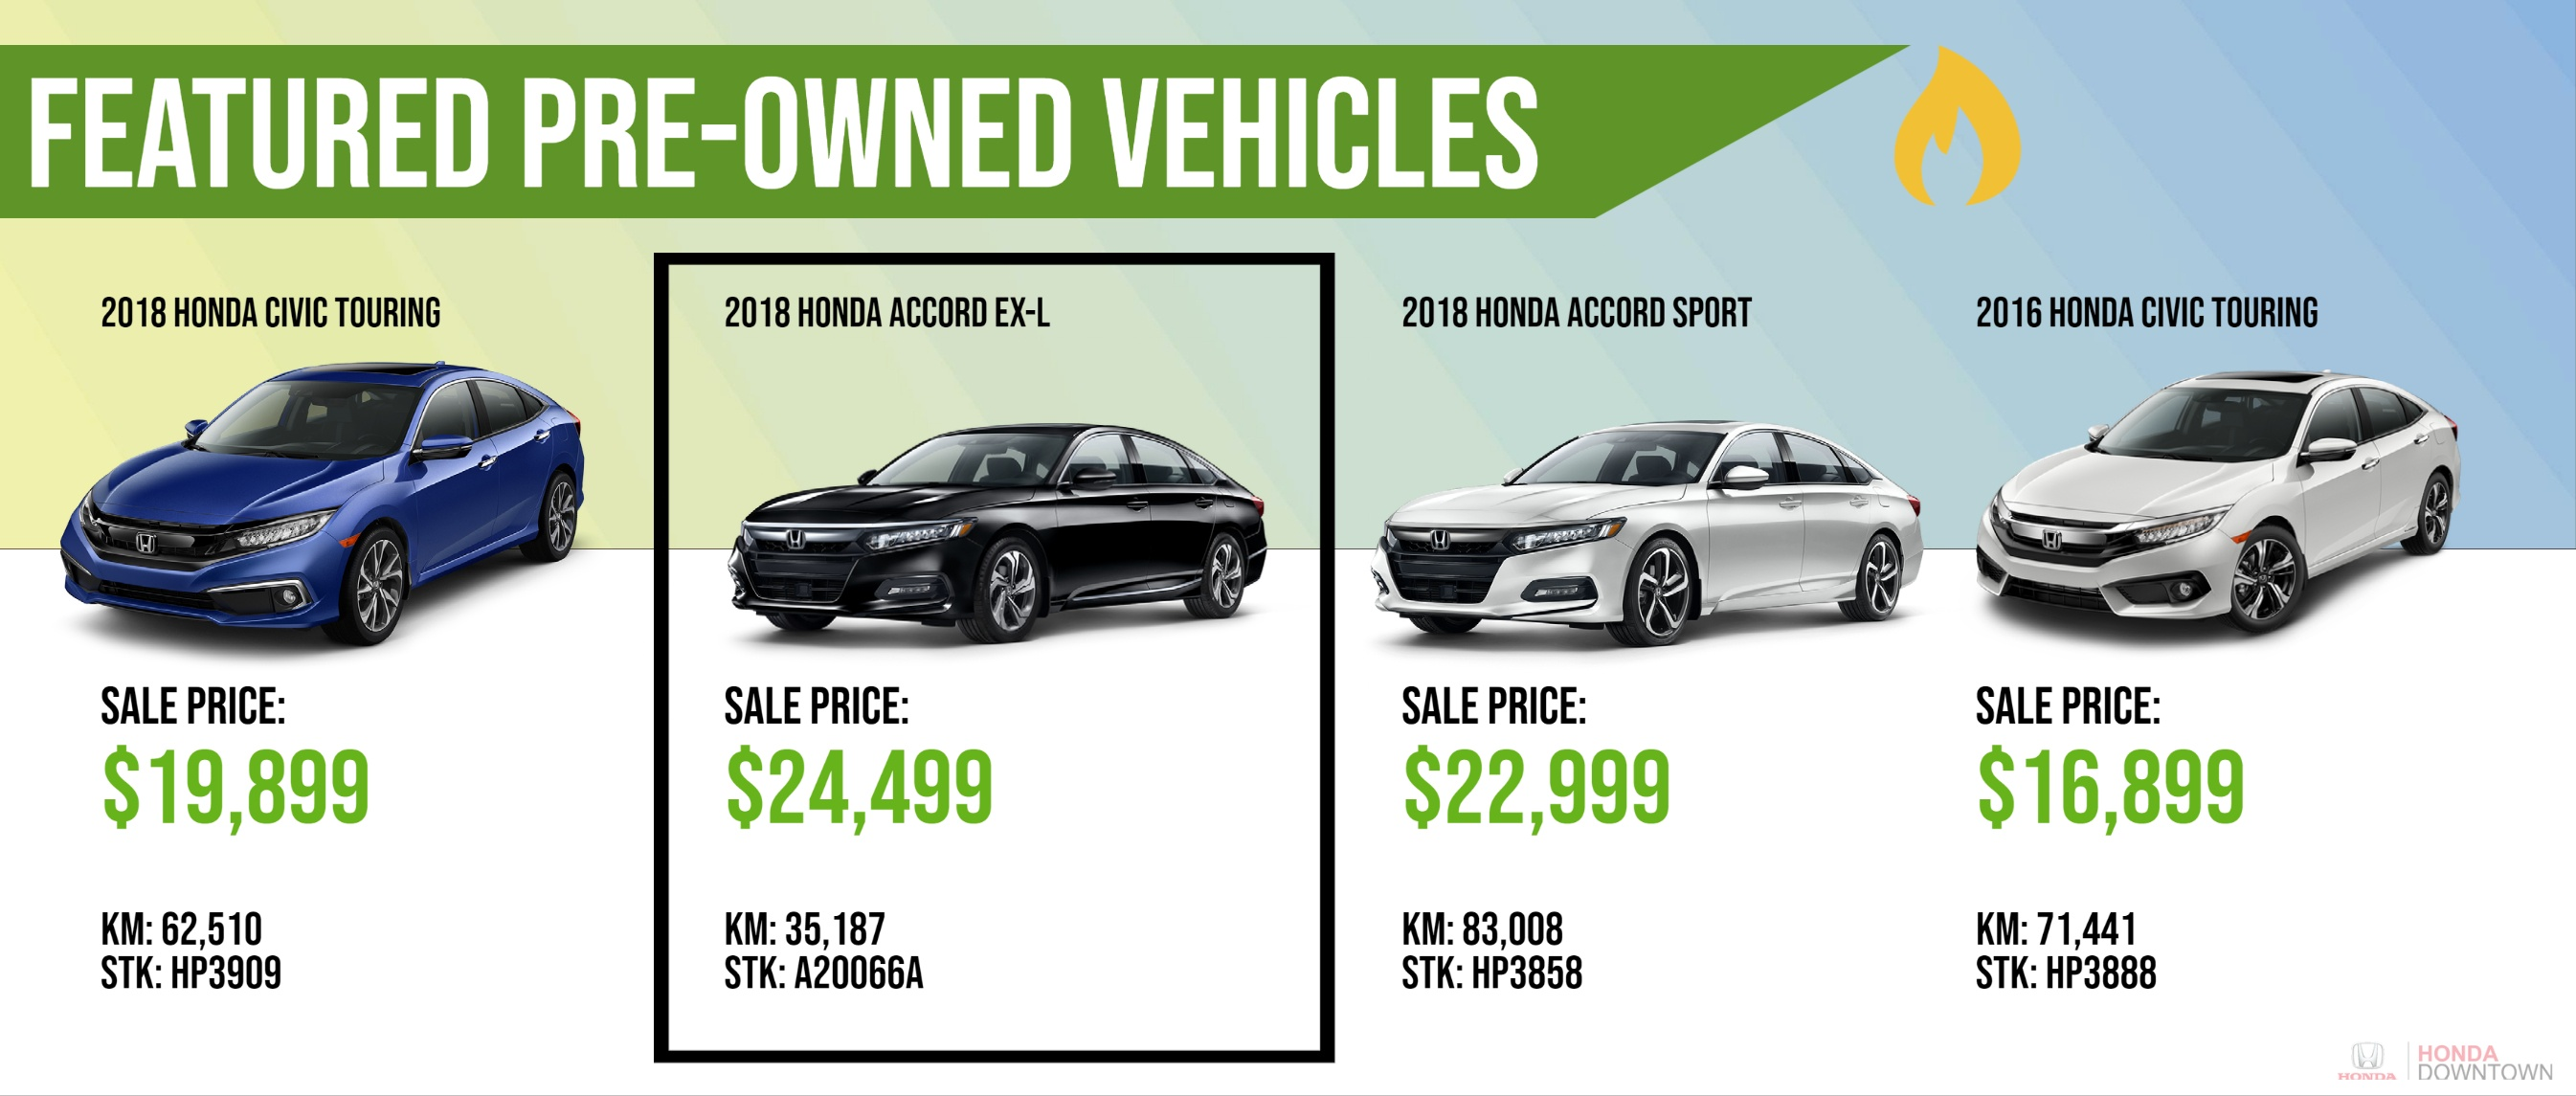 featured pre-owned vehicles